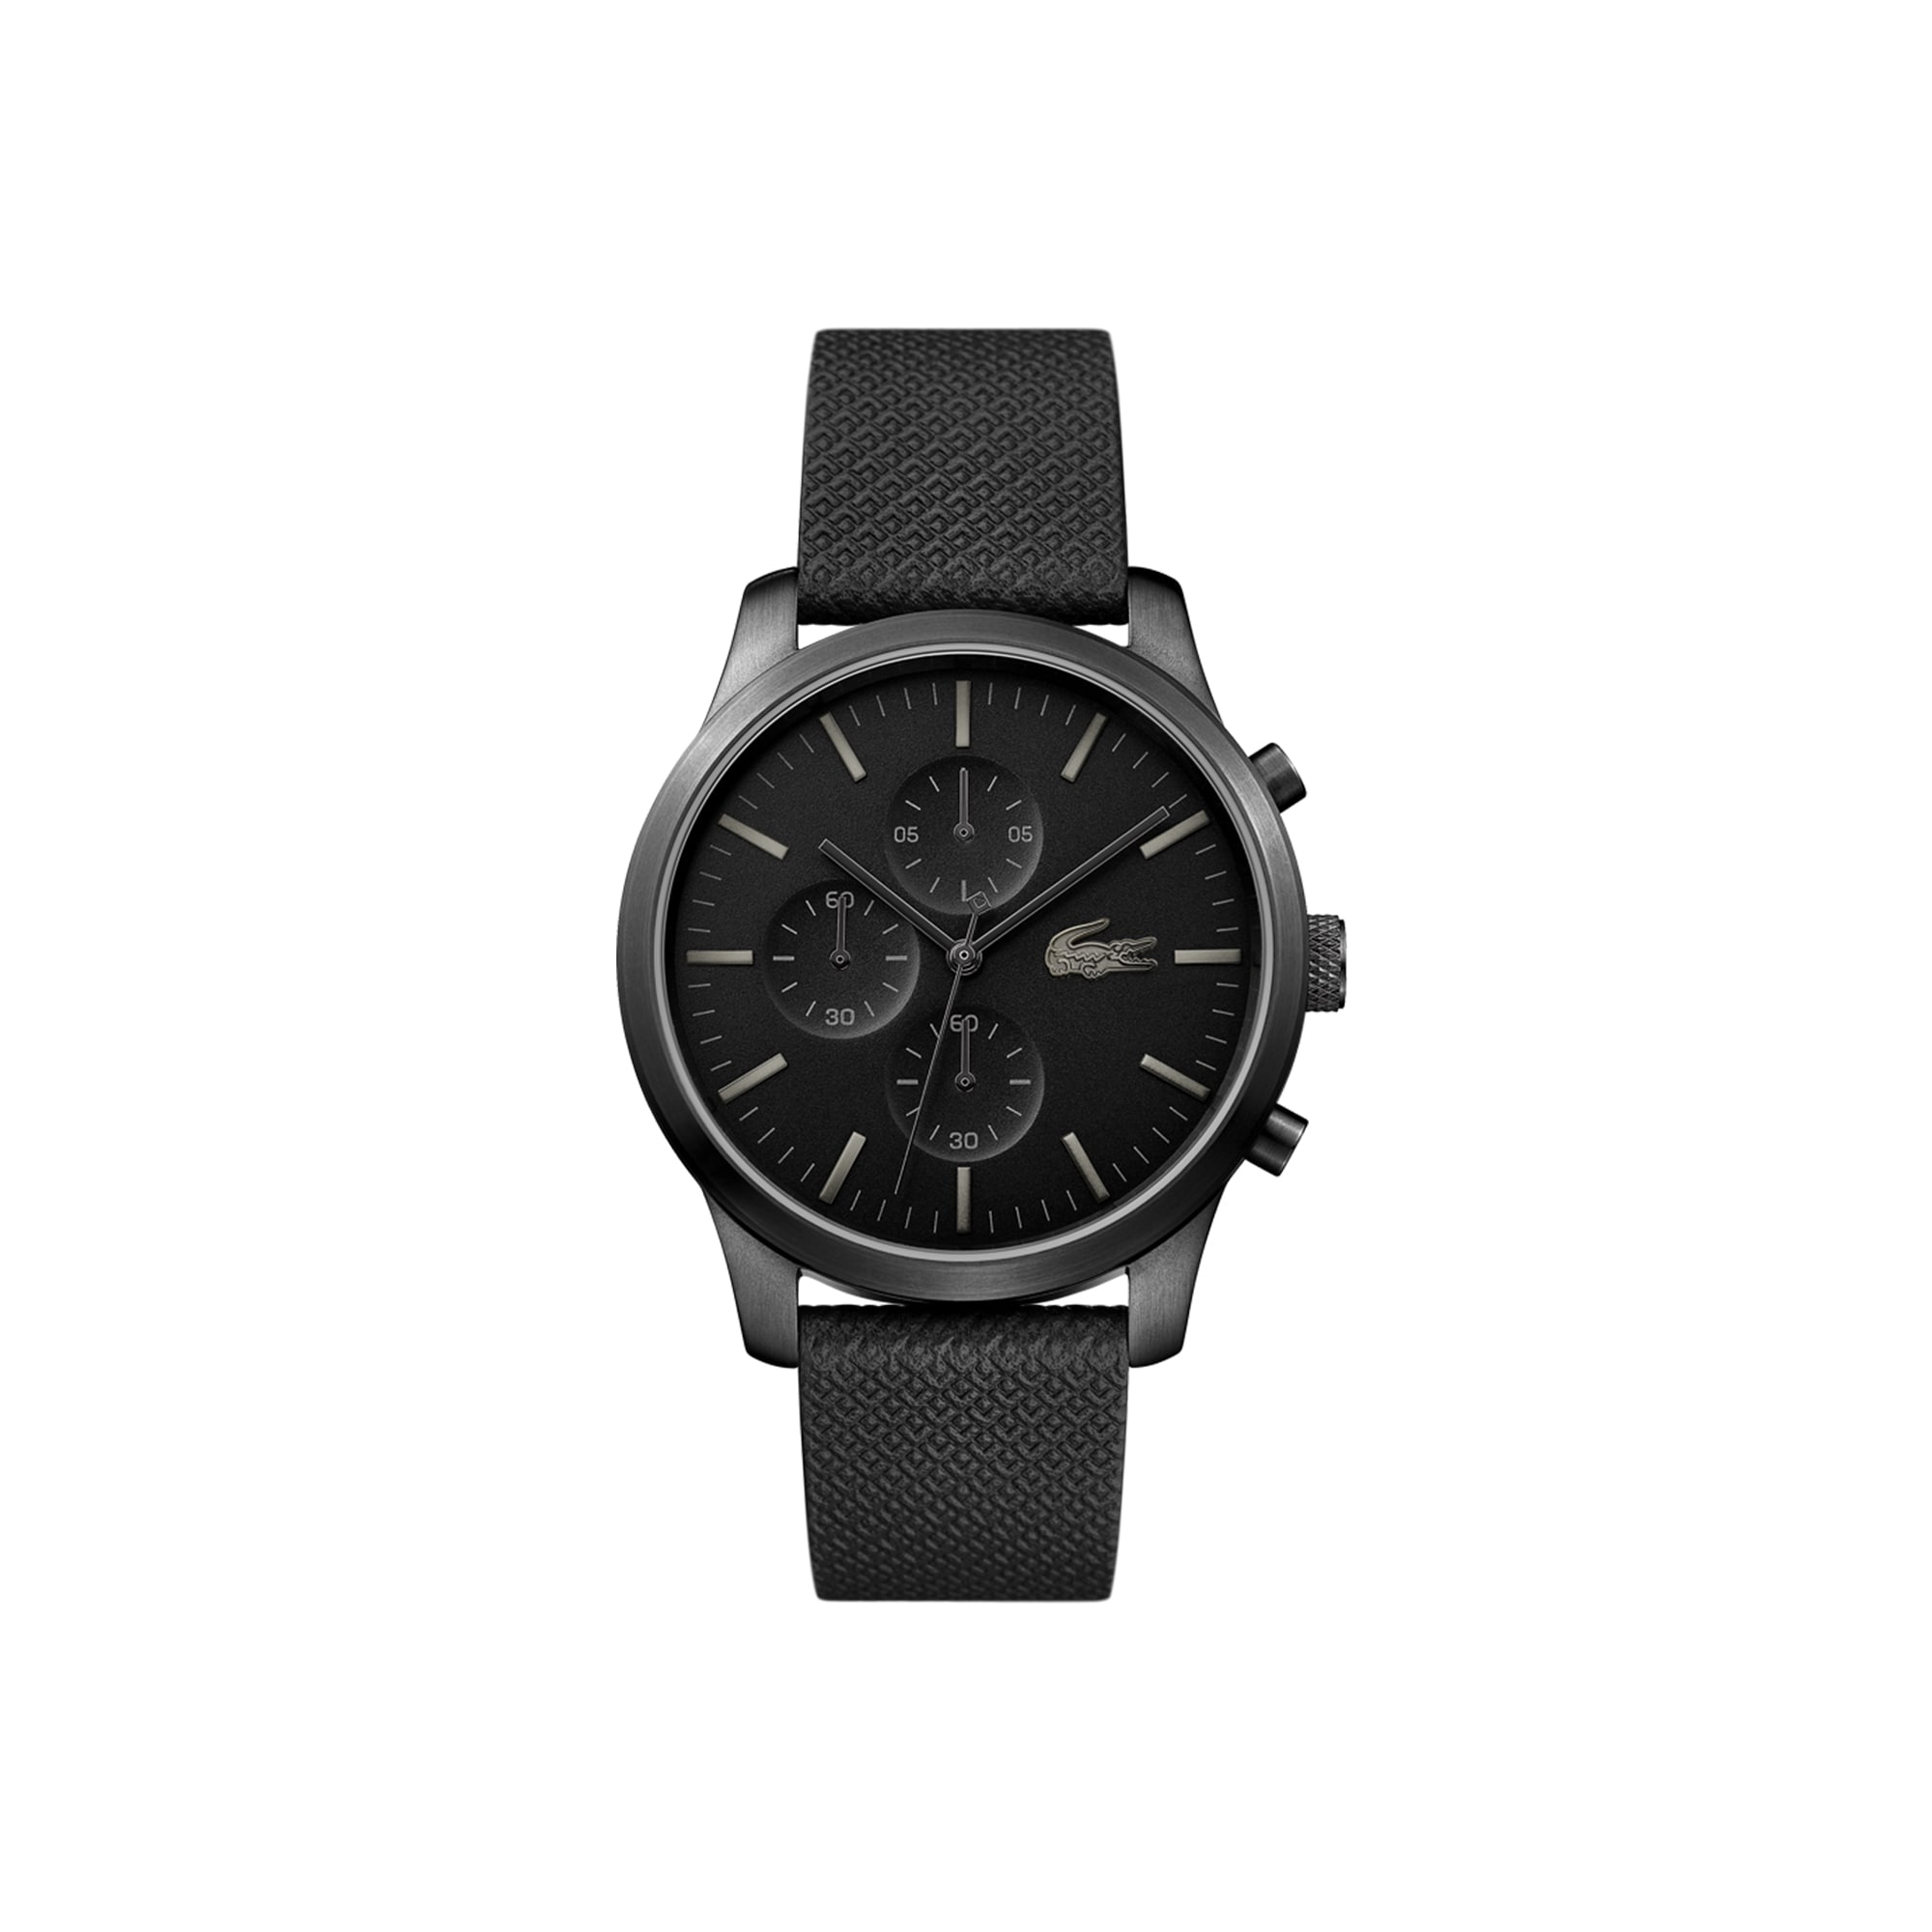 Men's Lacoste 12.12 Watch 85th Anniversary with Black Petit Piqué Embossed Leather Strap